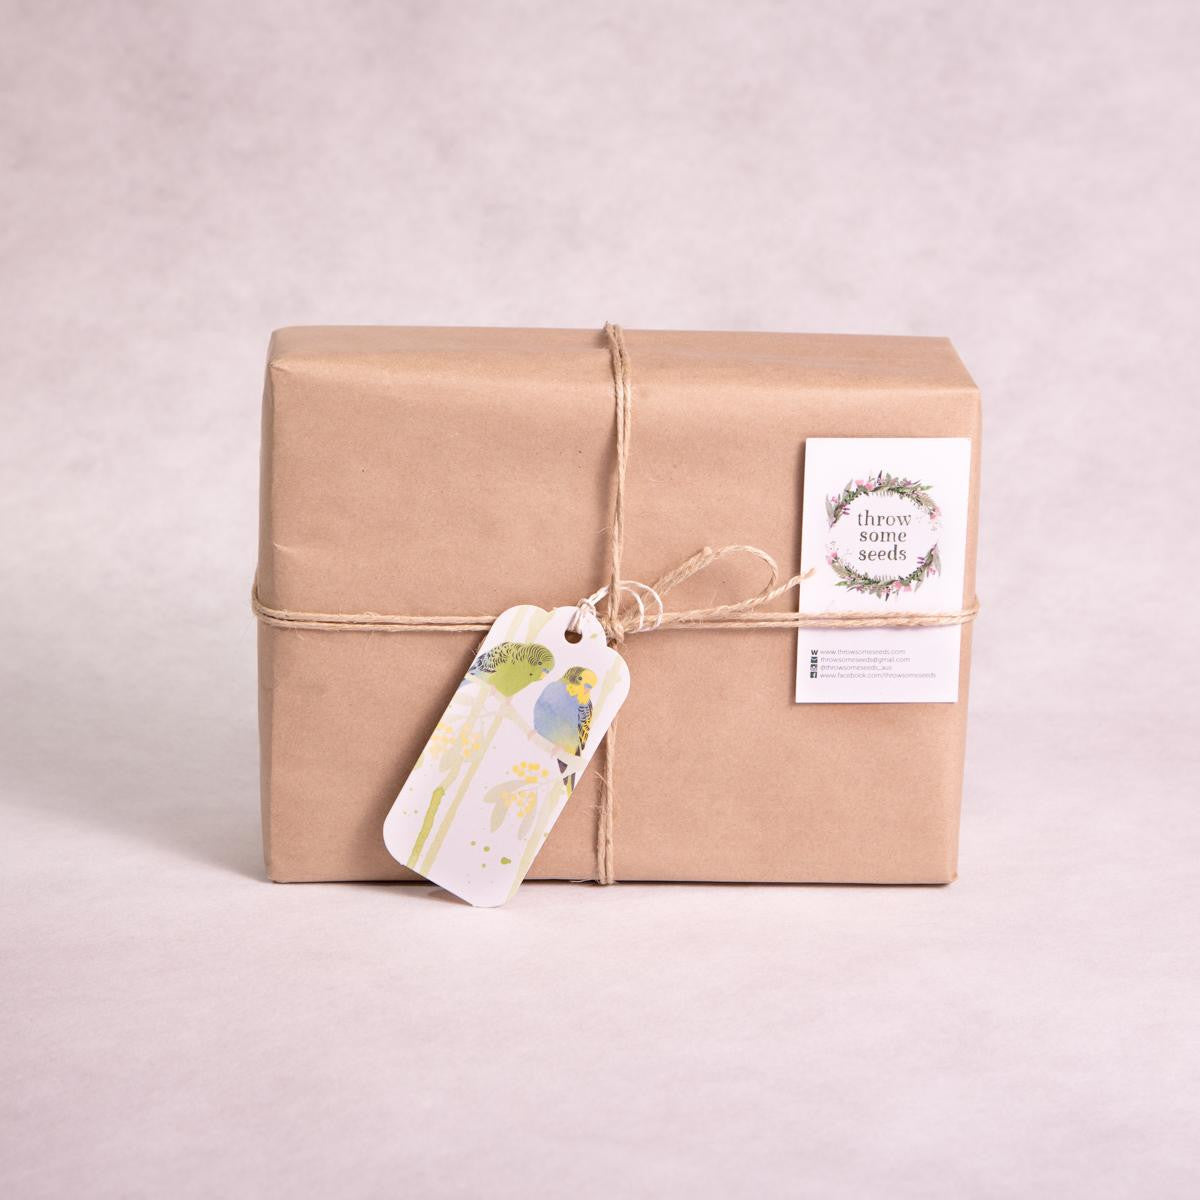 Gift Wrapping - Items will come gift wrapped in beautiful recycled paper and twine. Earth friendly gift tag included. - Gift Wrapping - Throw Some Seeds - Australian gardening gifts and eco products online!